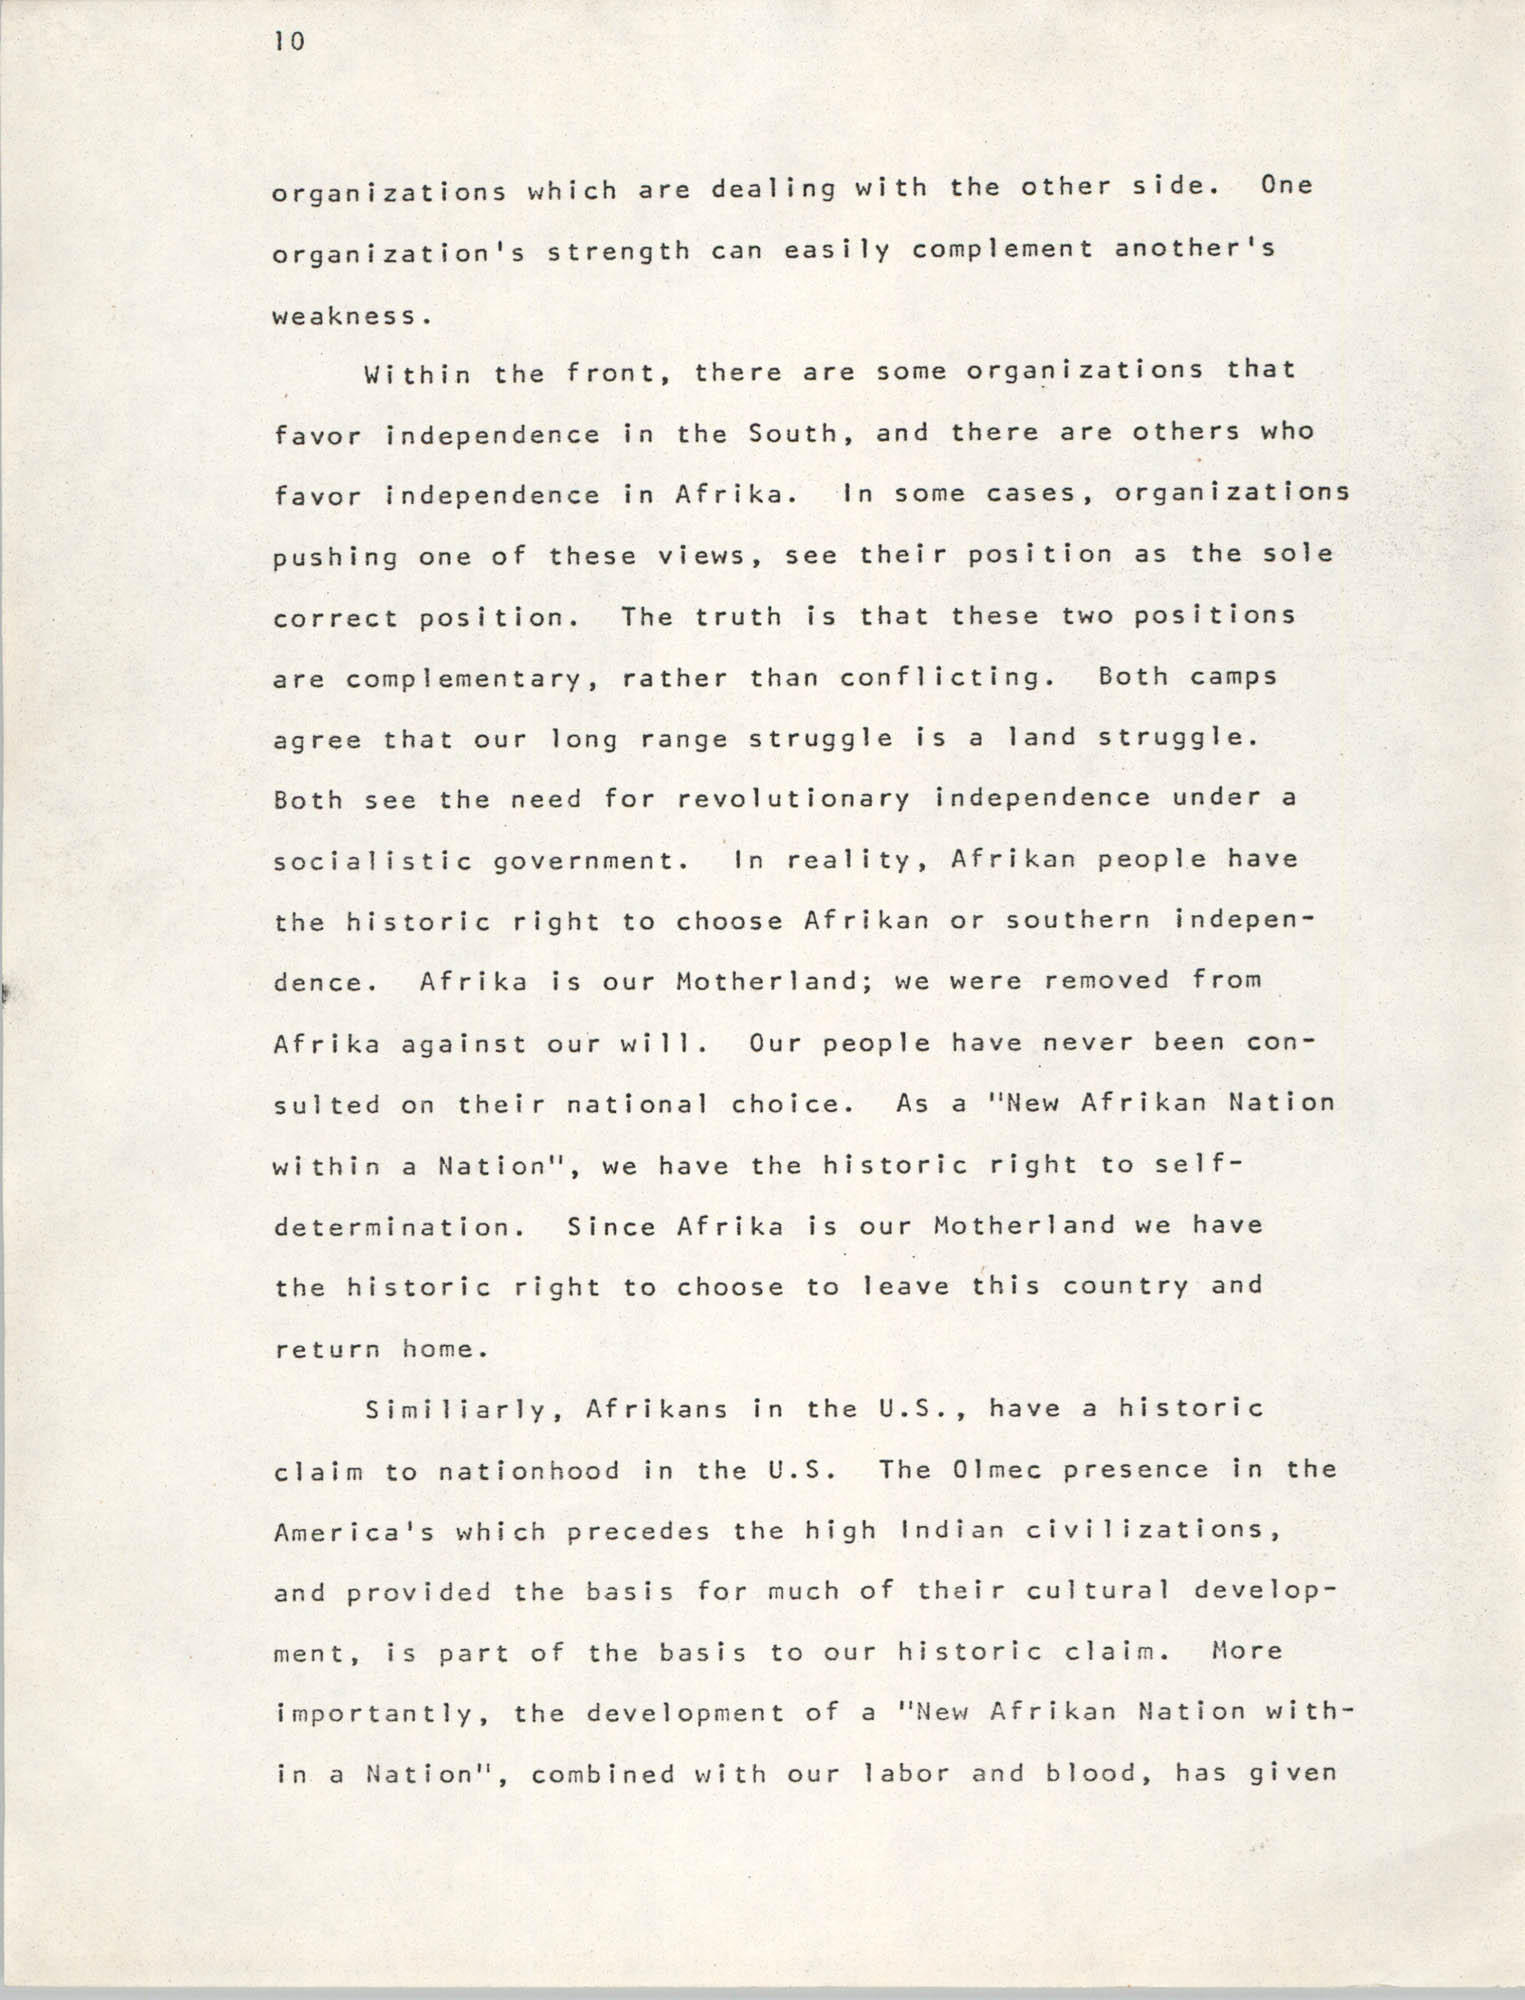 Pan-African Committee of the Black United Front, Page 10